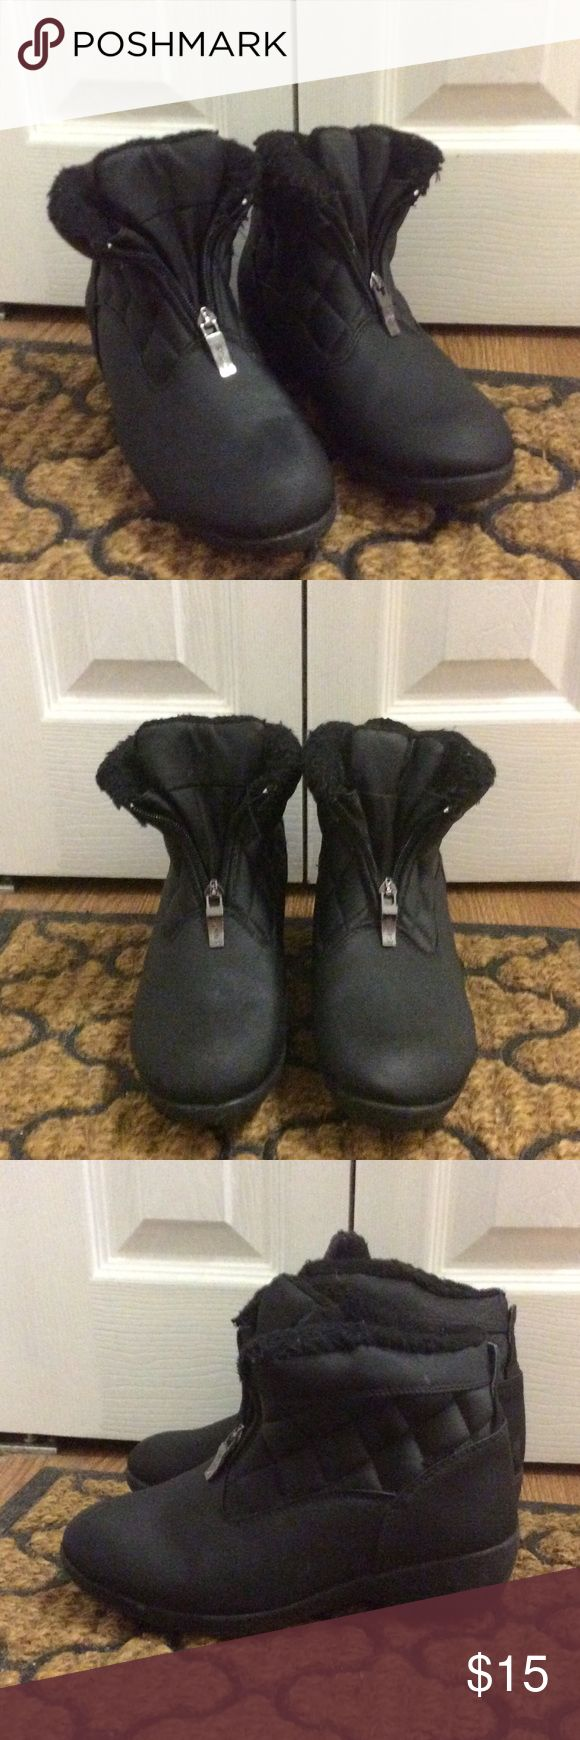 Sporto Boots sporto Boots with small heel Sporto Shoes Ankle Boots & Booties